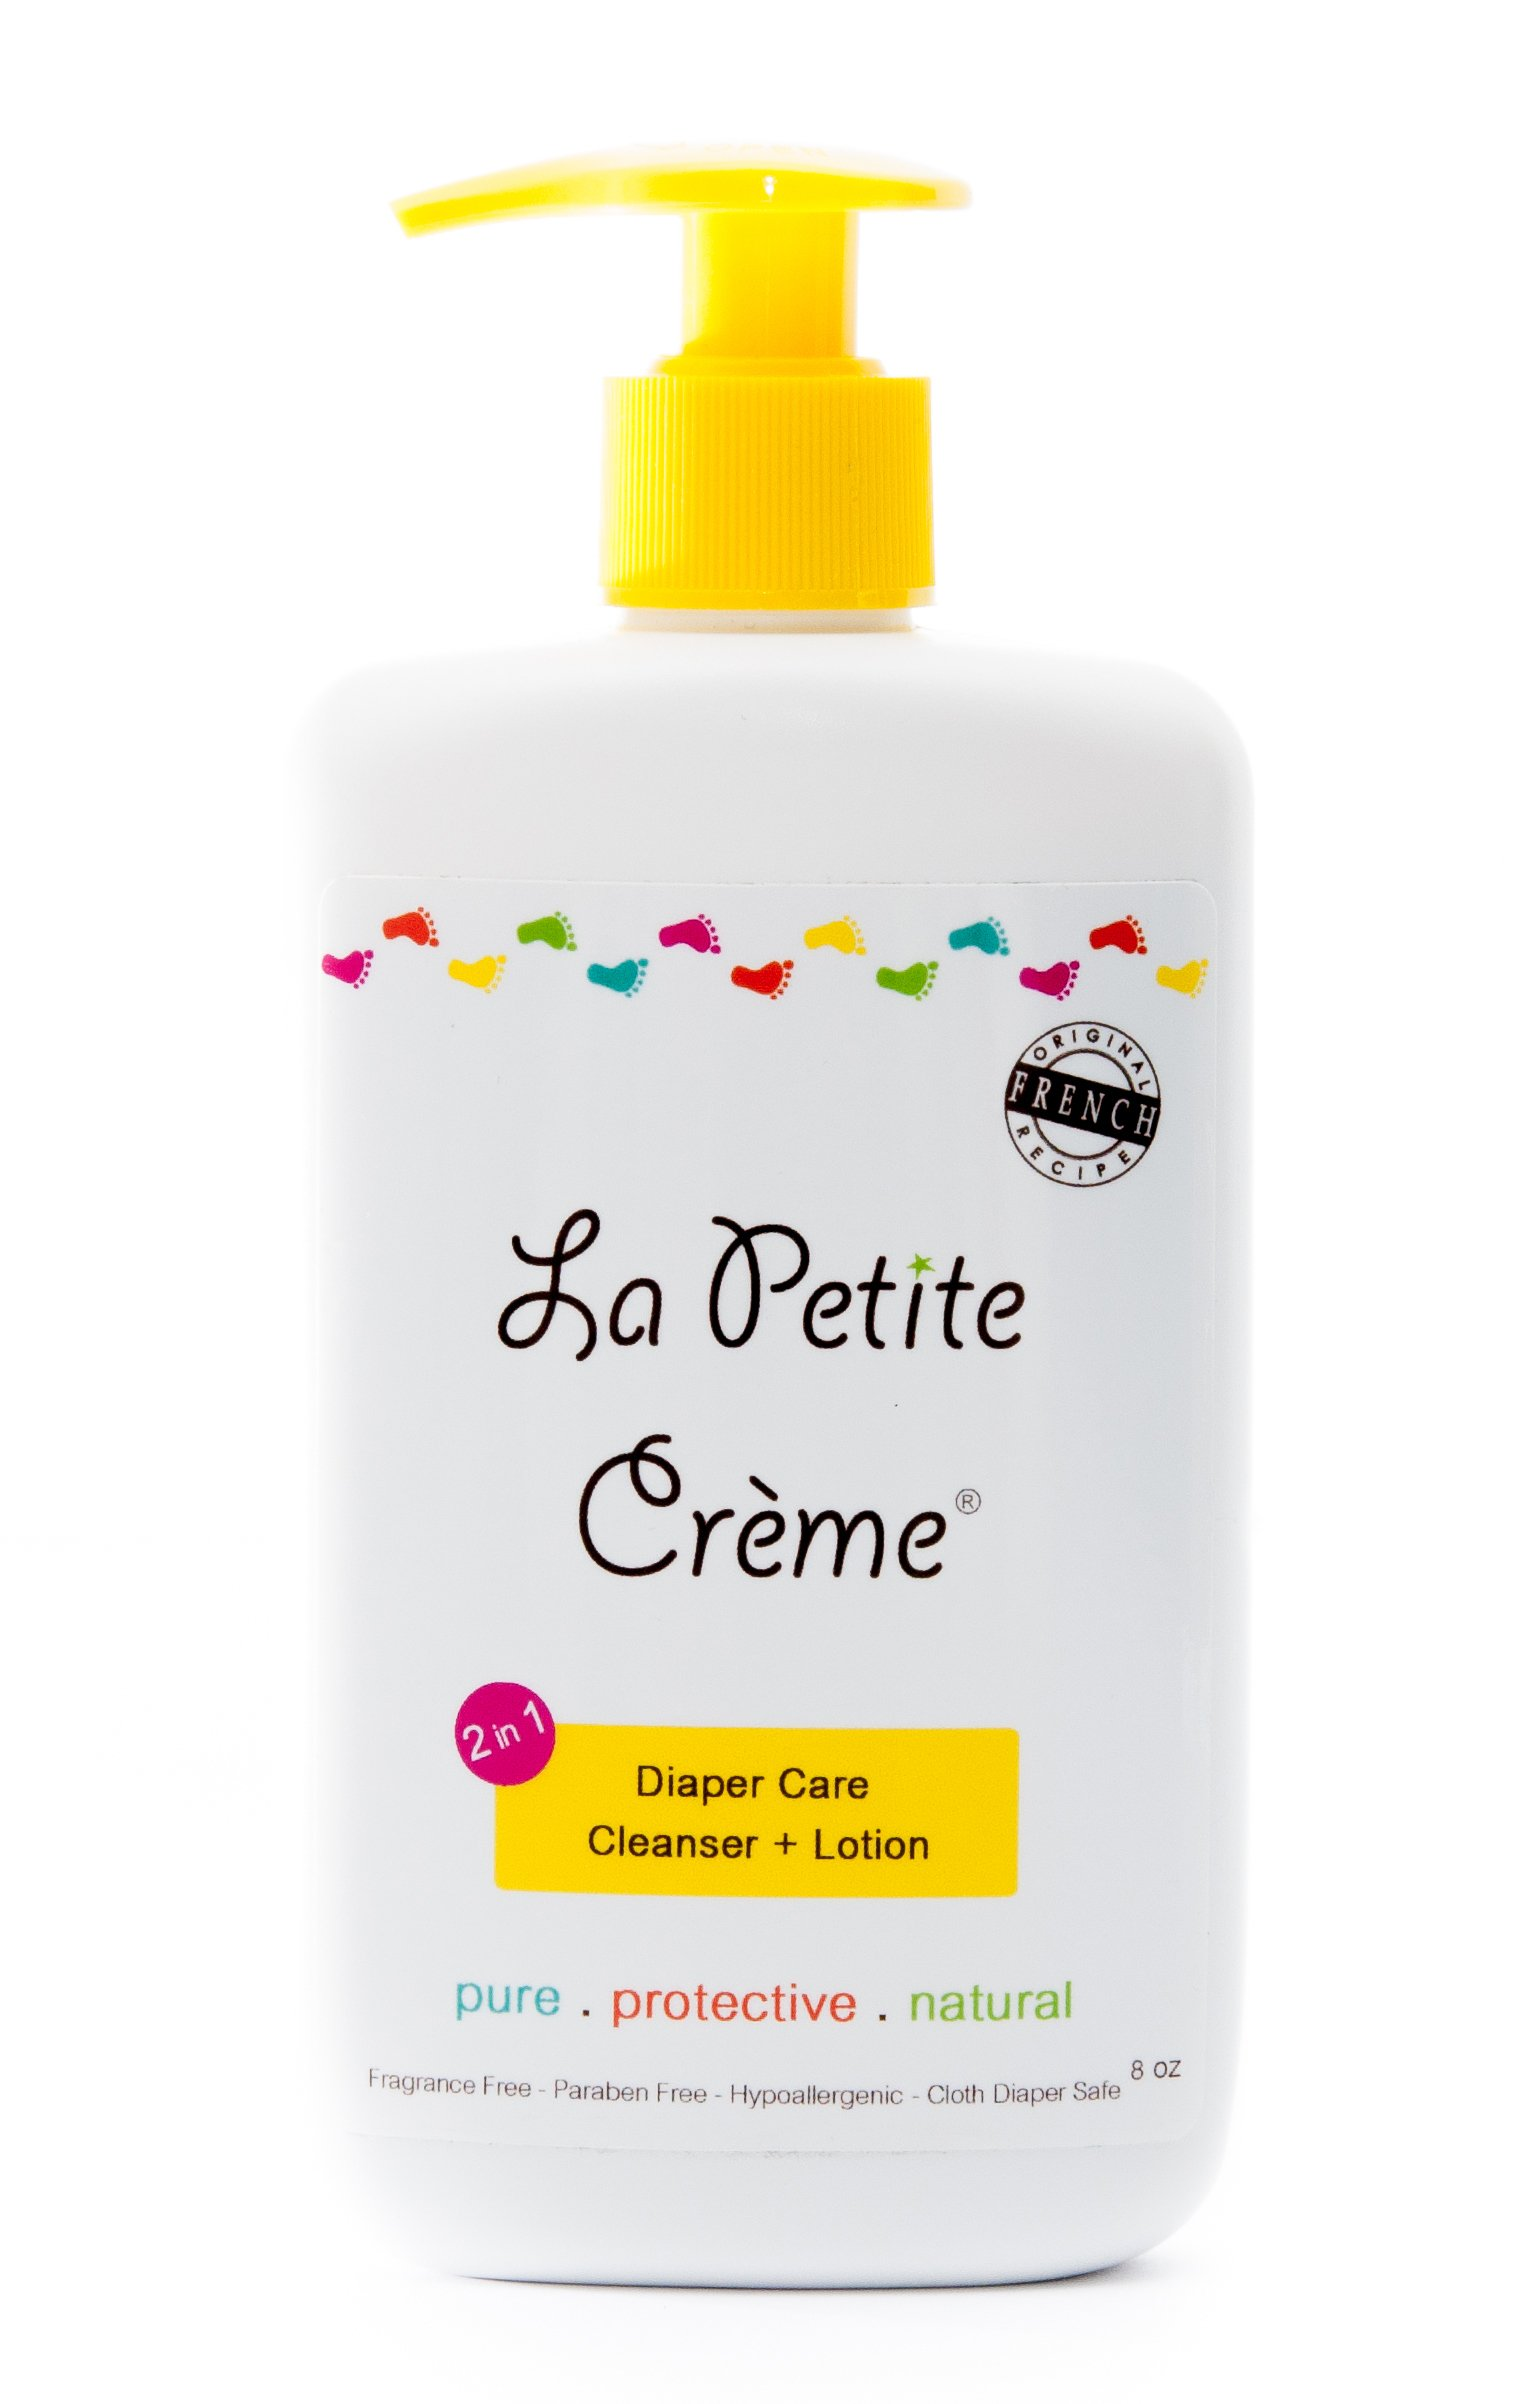 La Petite Creme - 100% Natural 2-in-1 Diaper Care Cleanser & Lotion - Liniment (8 Oz Everyday Bottle with Dispensing Pump)